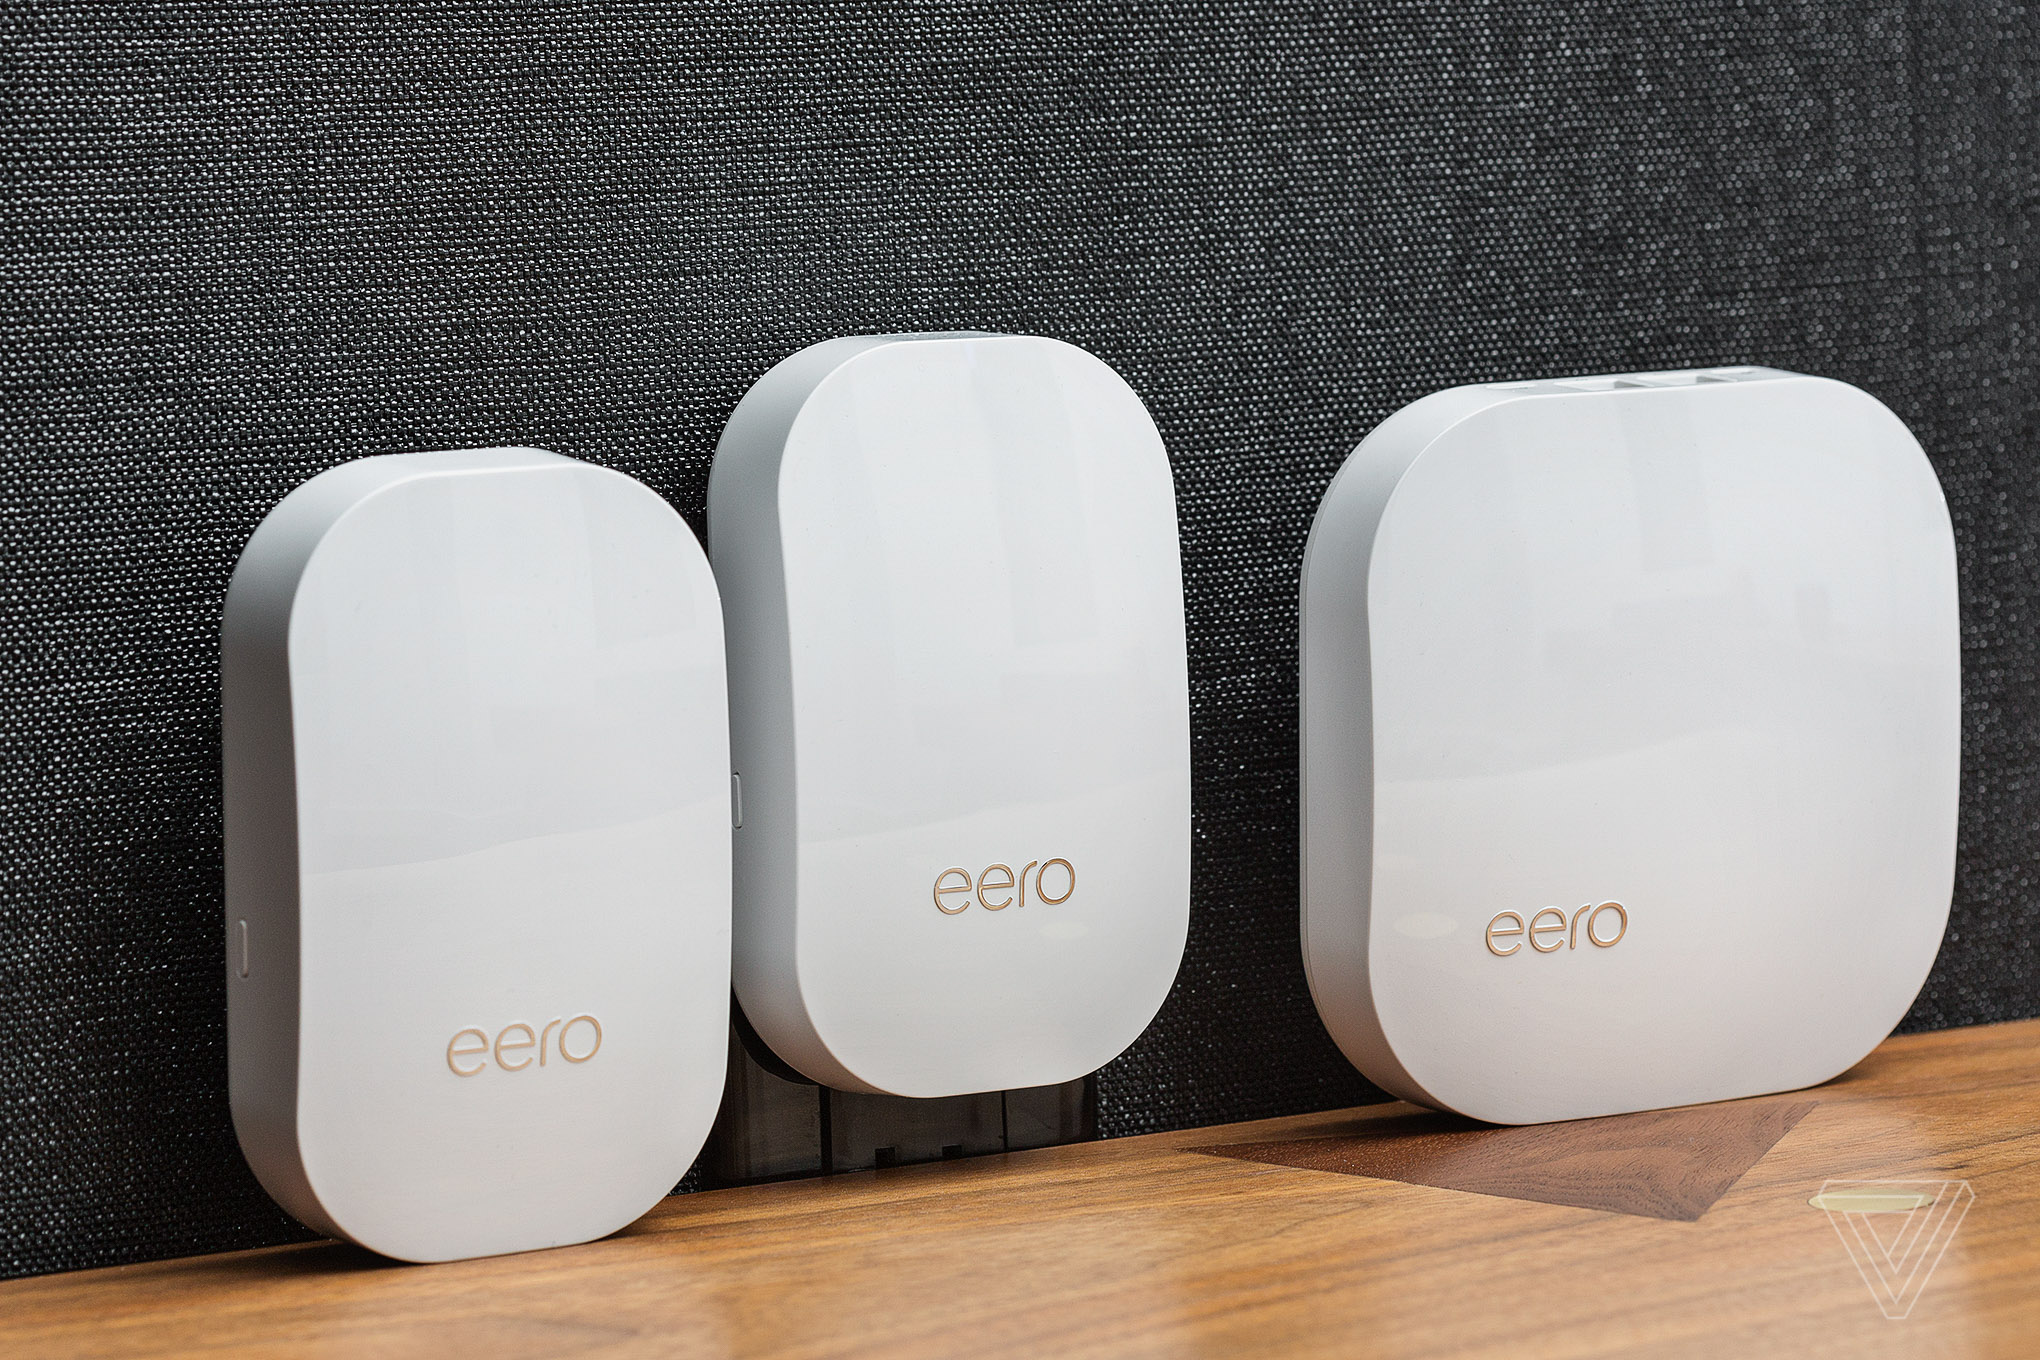 A new Wi-Fi standard could let different mesh routers work together